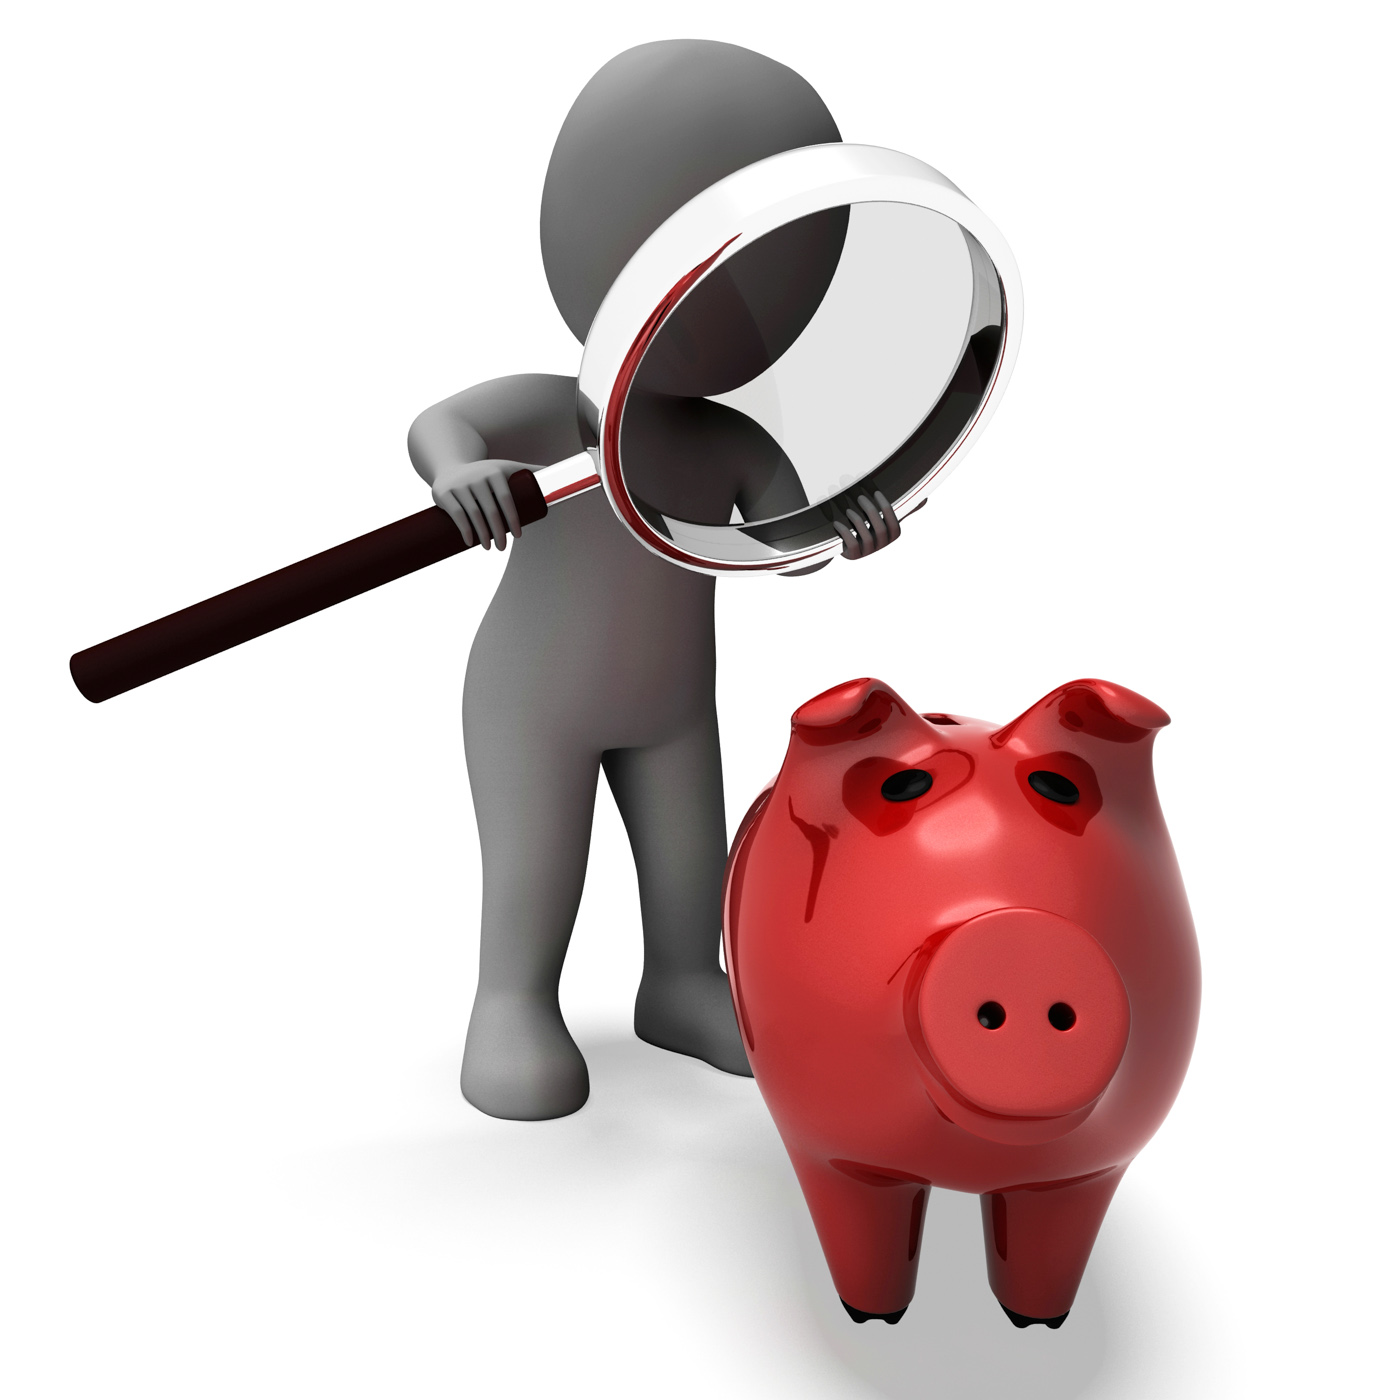 Piggy bank and character shows savings finances and banking photo